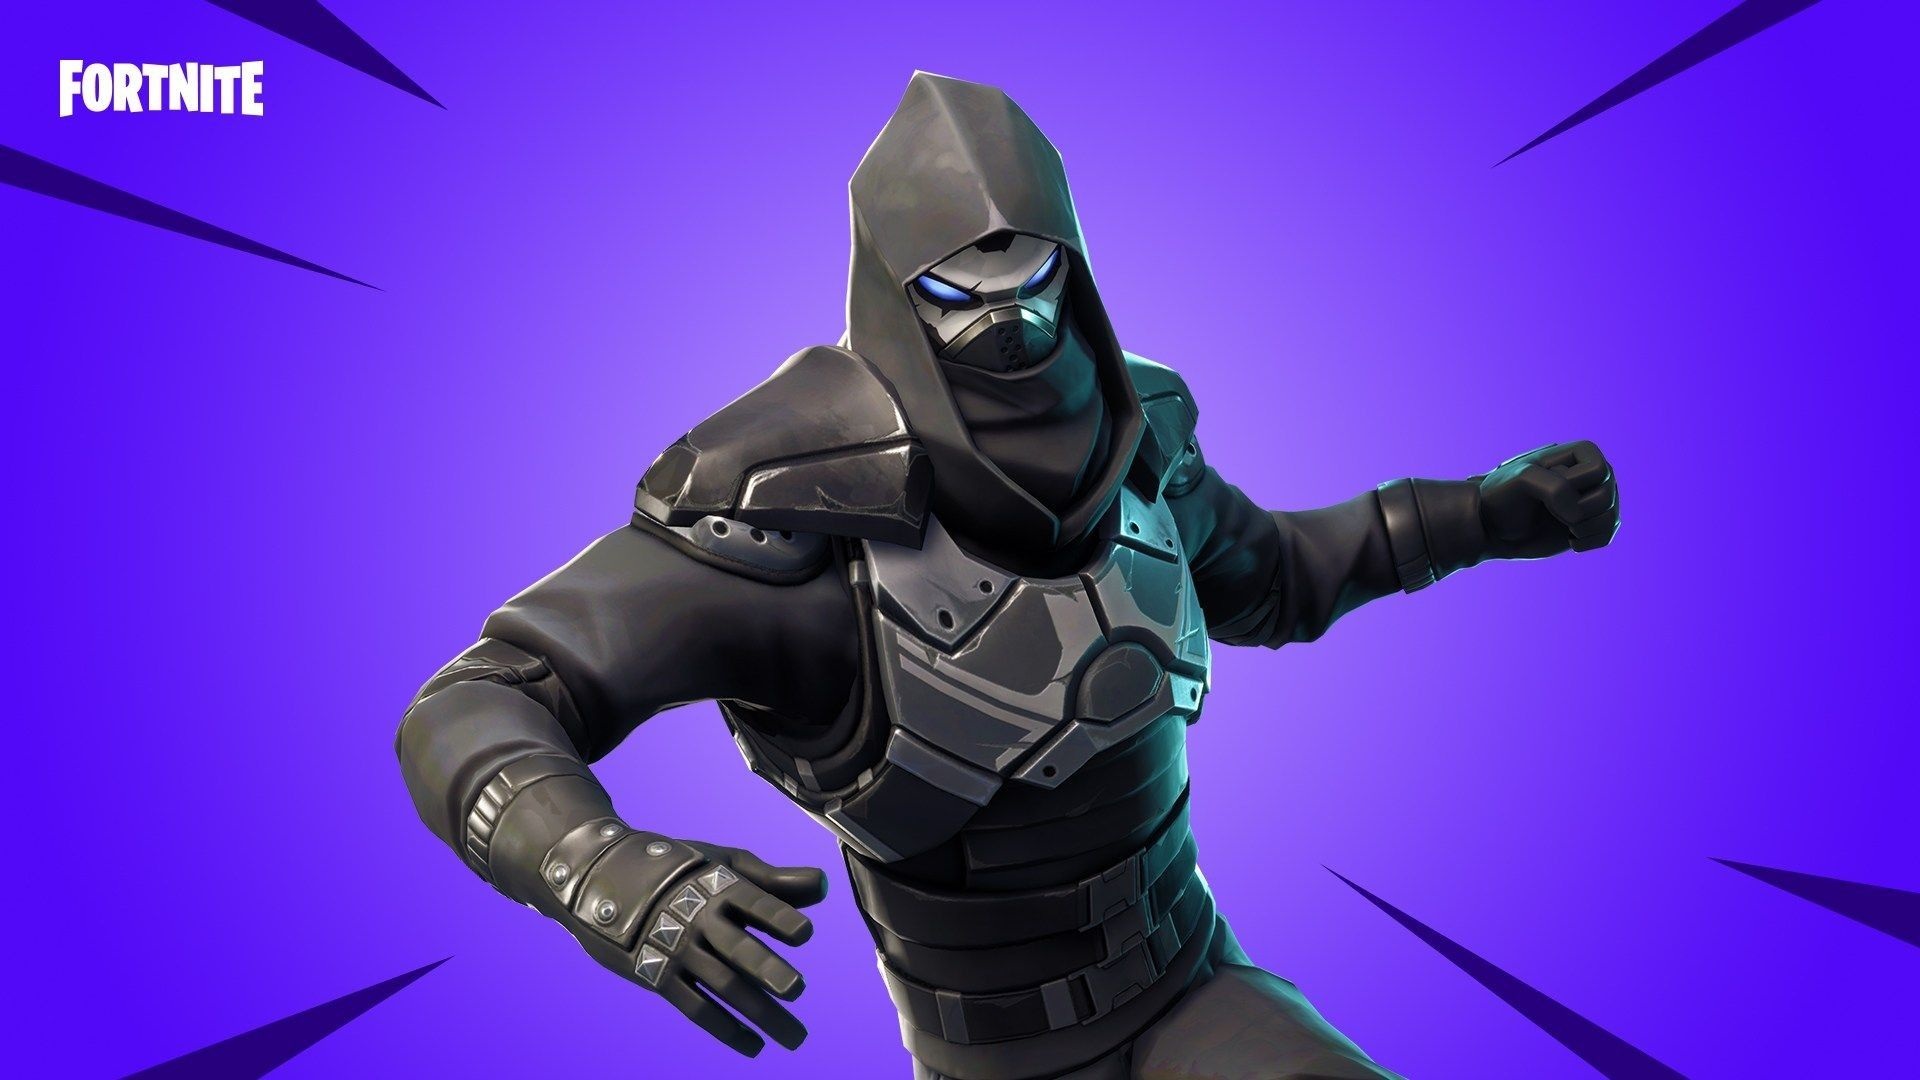 Beautiful Fortnite Skin Clipart In 2020 Background Images Wallpapers Hd Wallpaper Clip Art